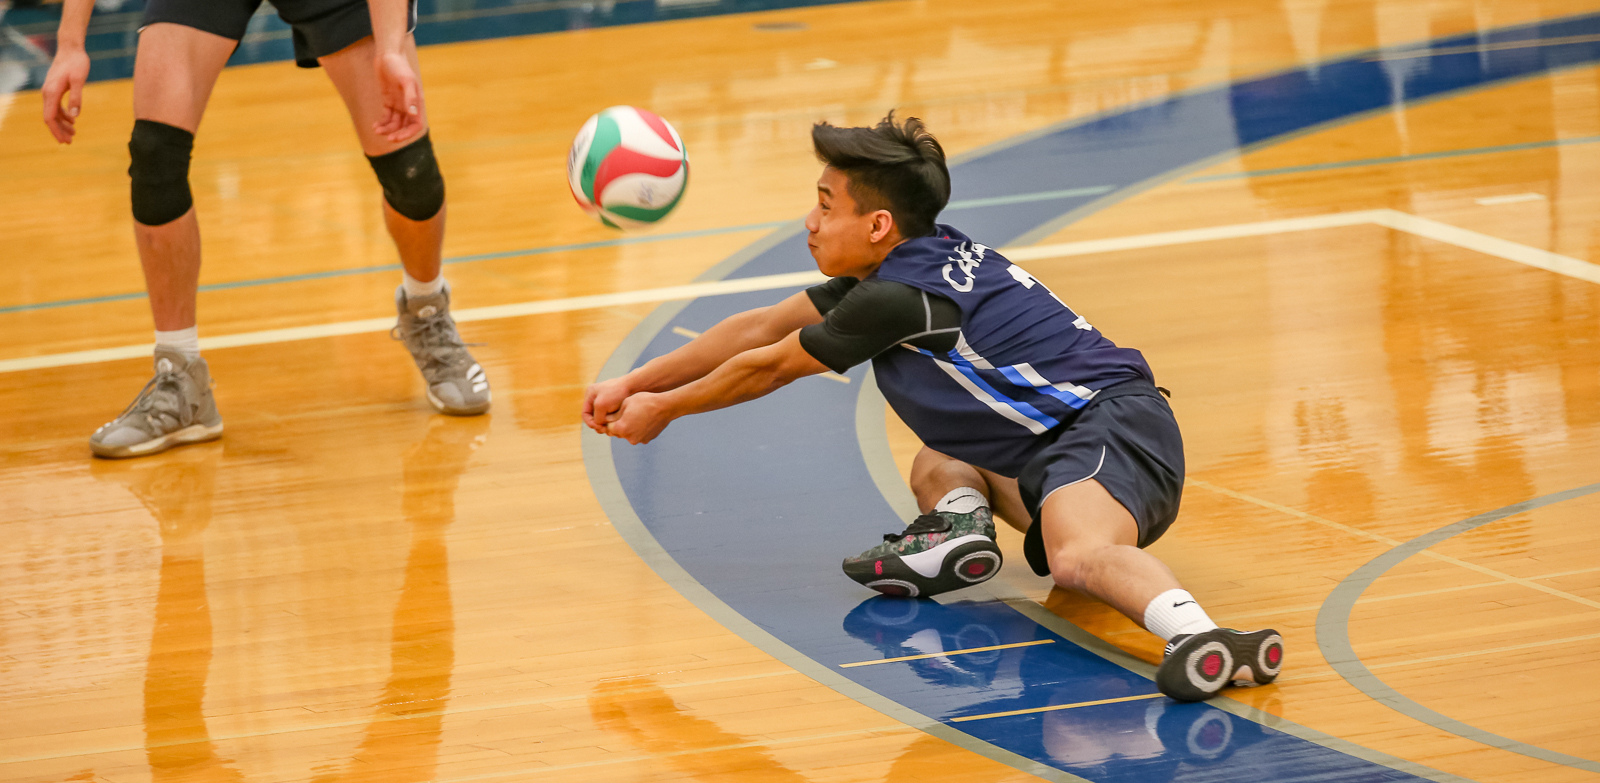 CapU third-year libero Jonathan Lee. Photo Paul Yates / Vancouver Sports Pictures